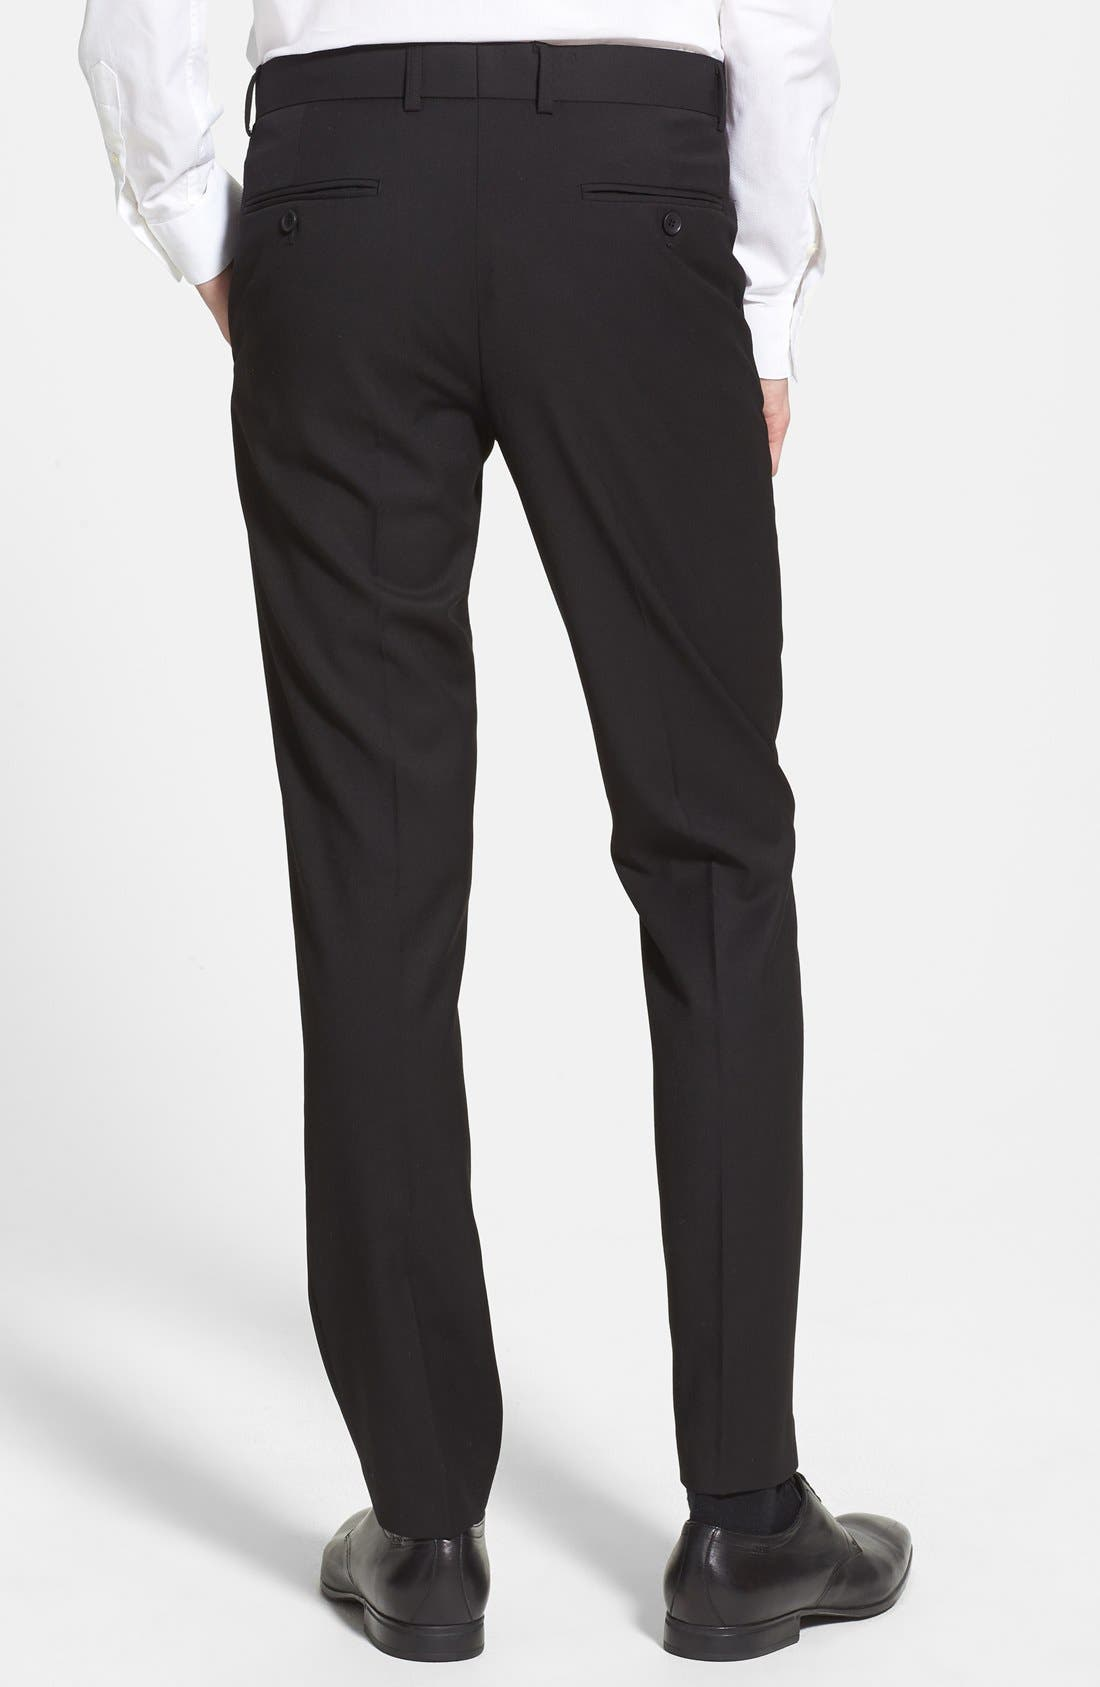 Black Textured Skinny Fit Flat Front Trousers,                             Alternate thumbnail 2, color,                             001